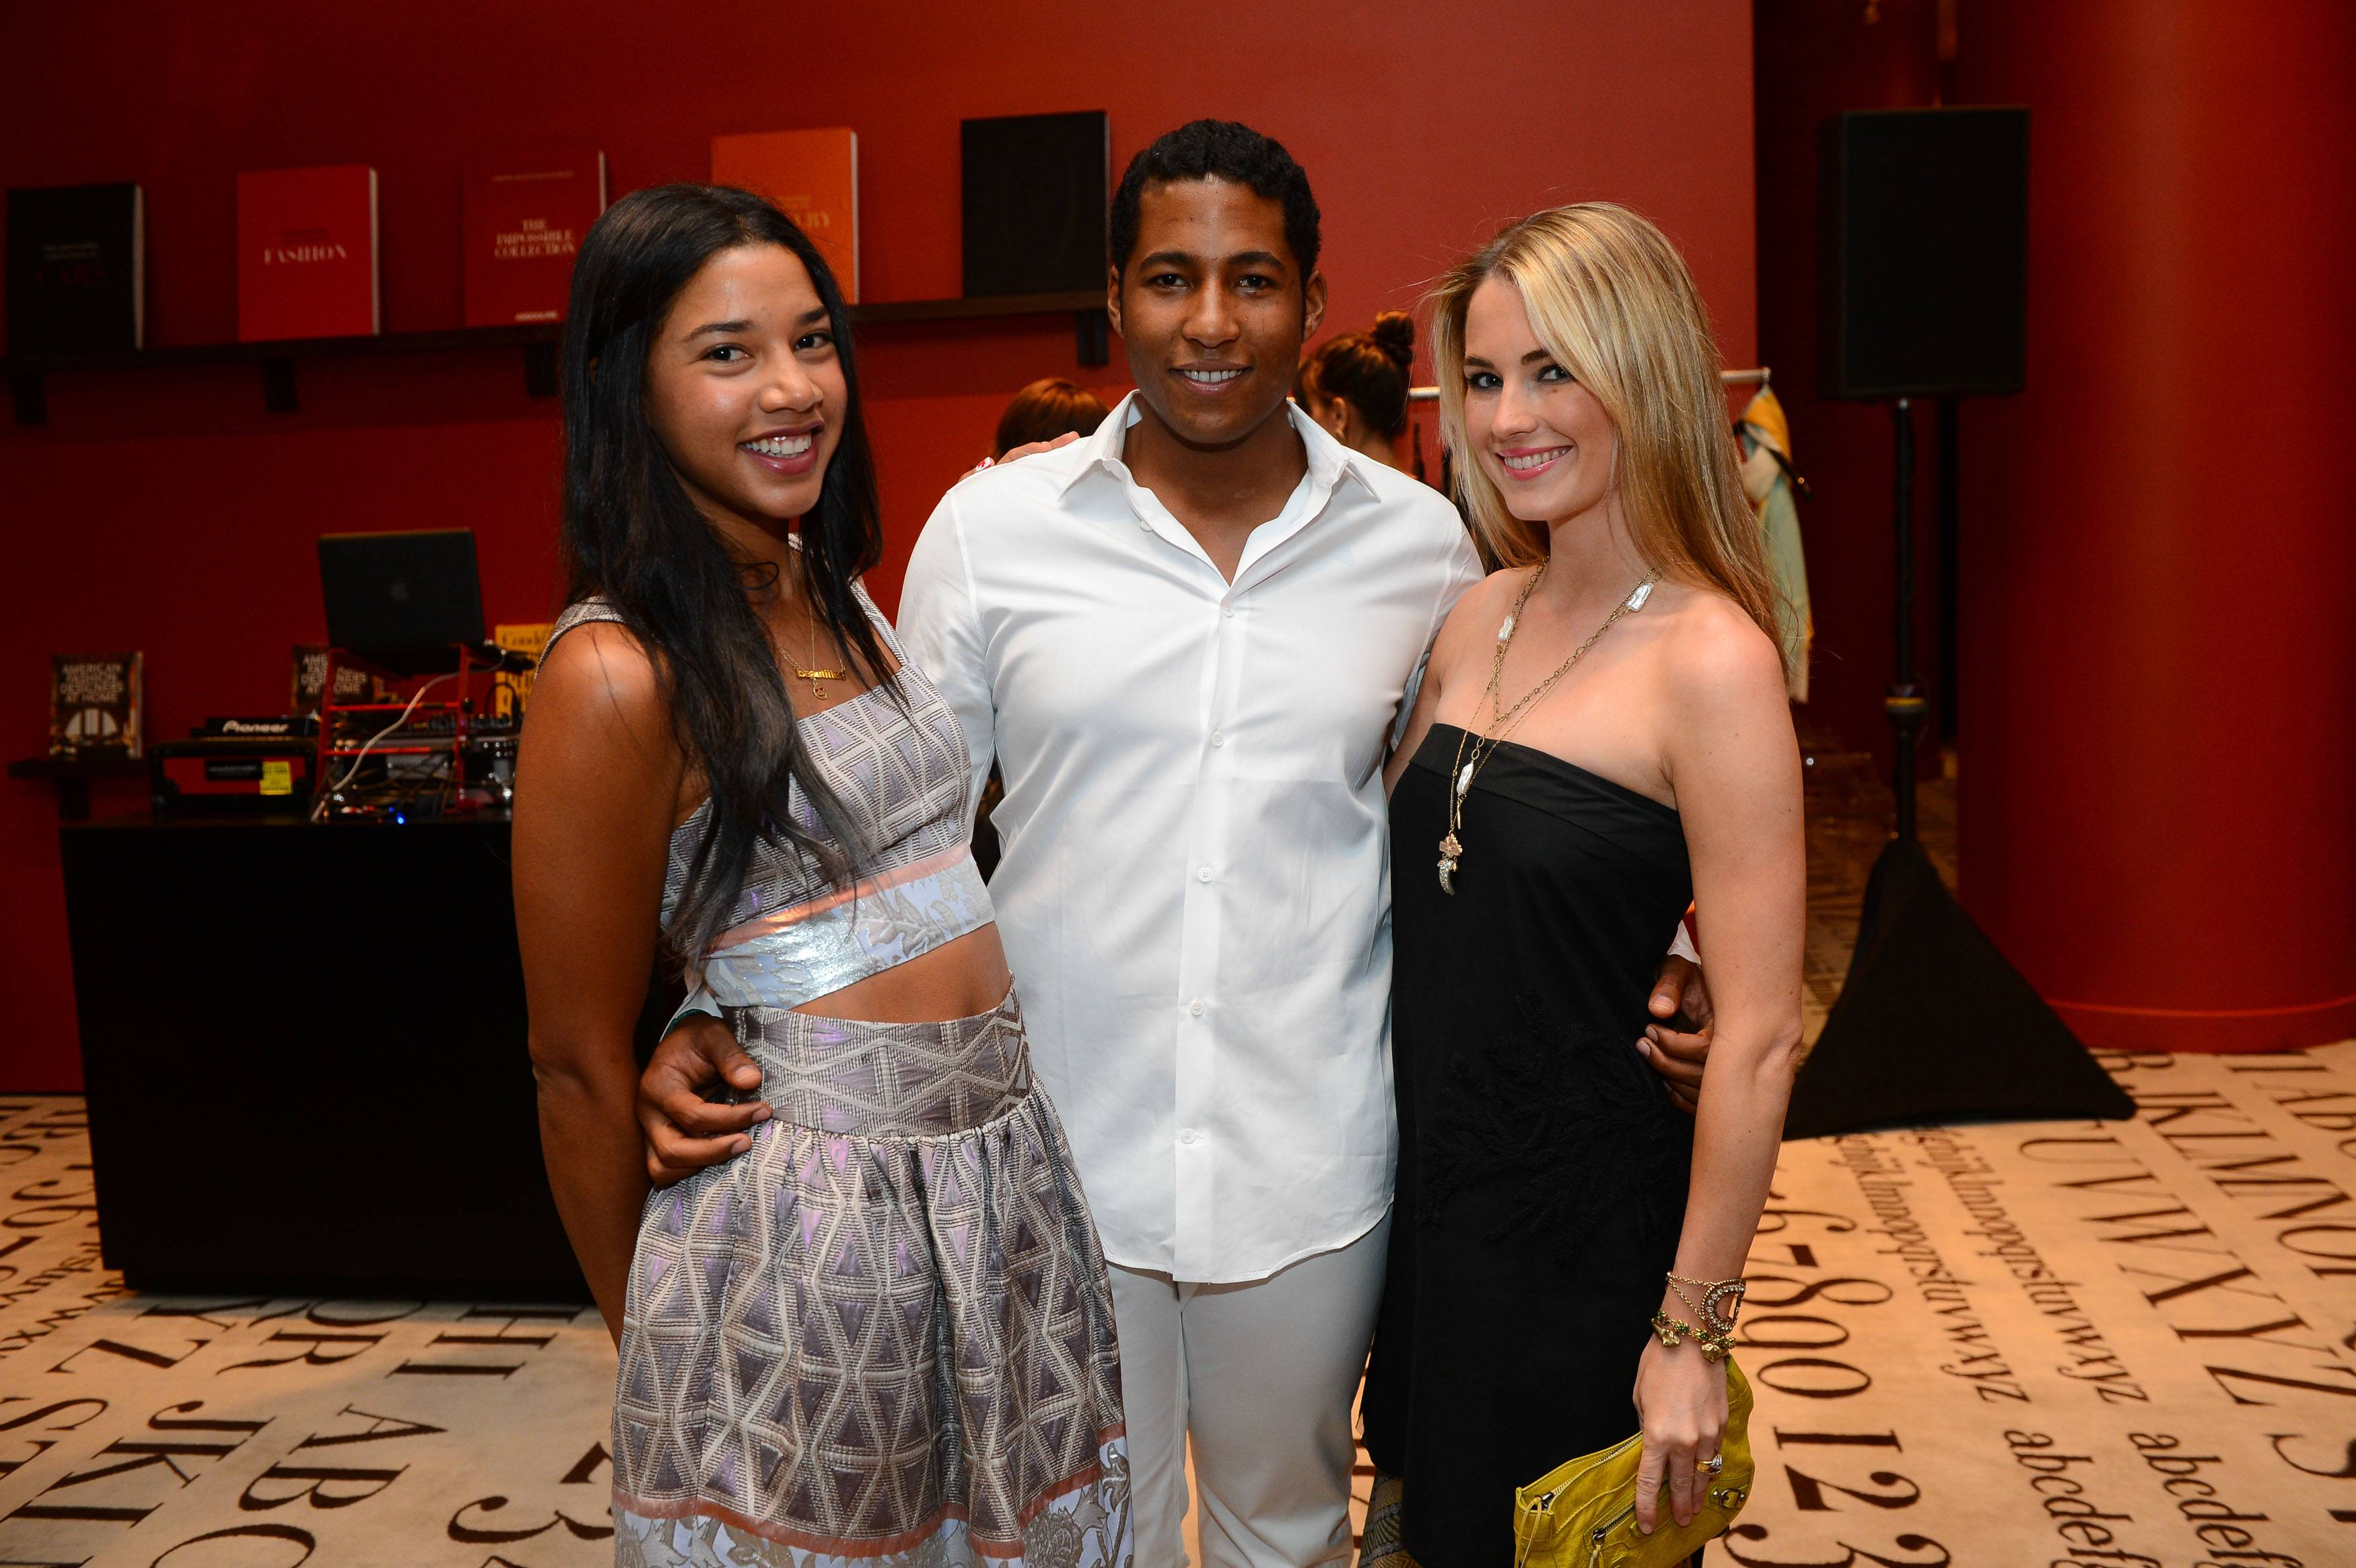 Hannah Bronfman, Hassan Pierre and Amanda Hearst at the opening of Maison de Mode.